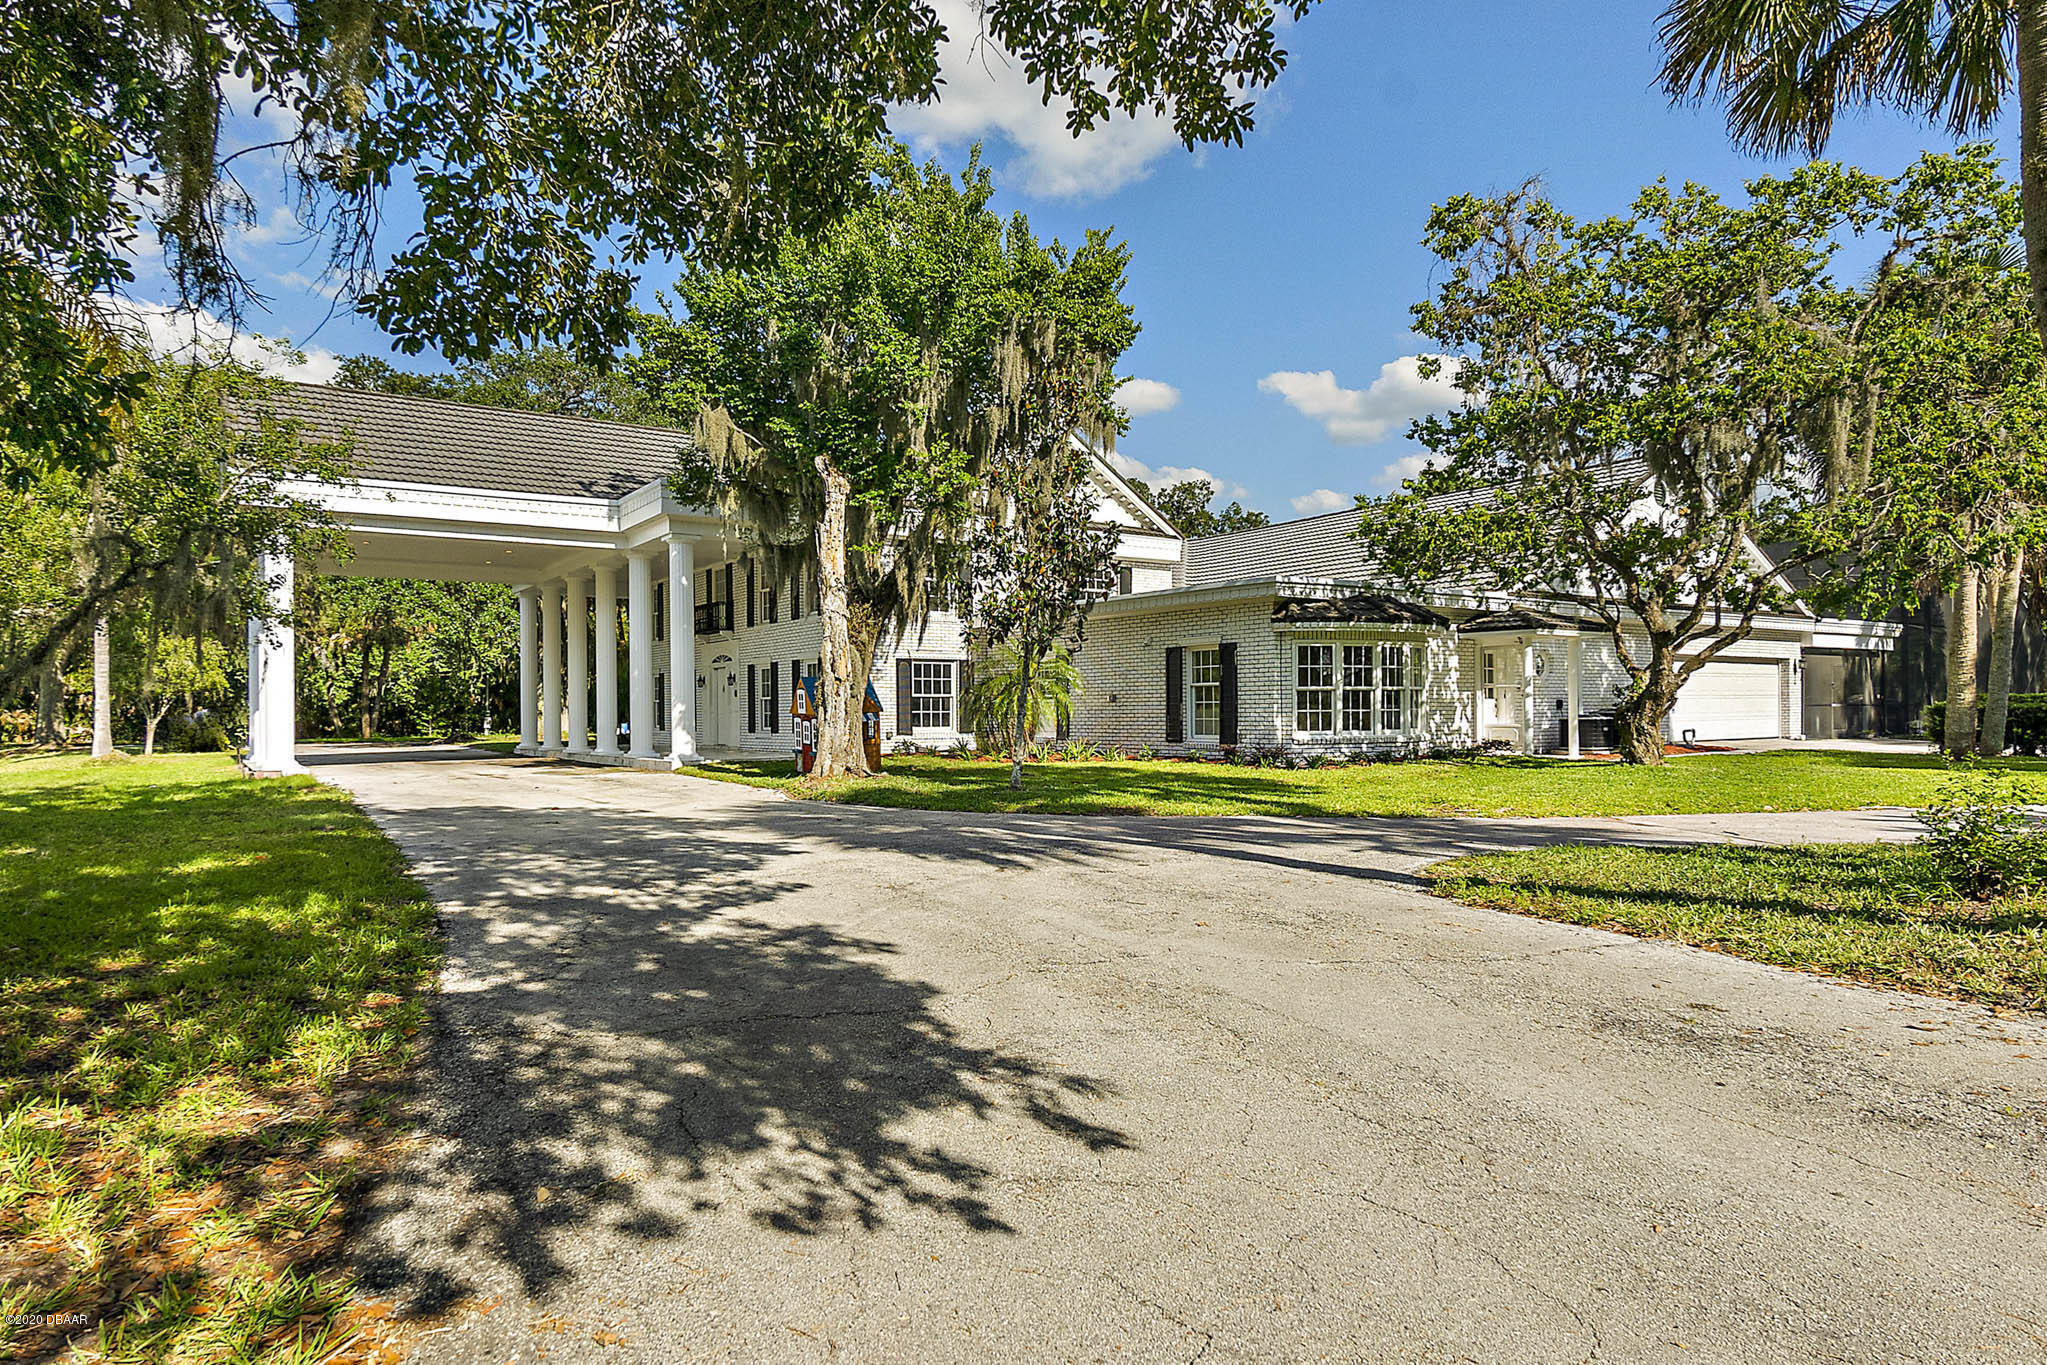 6869 Highway 100 Bunnell - 59